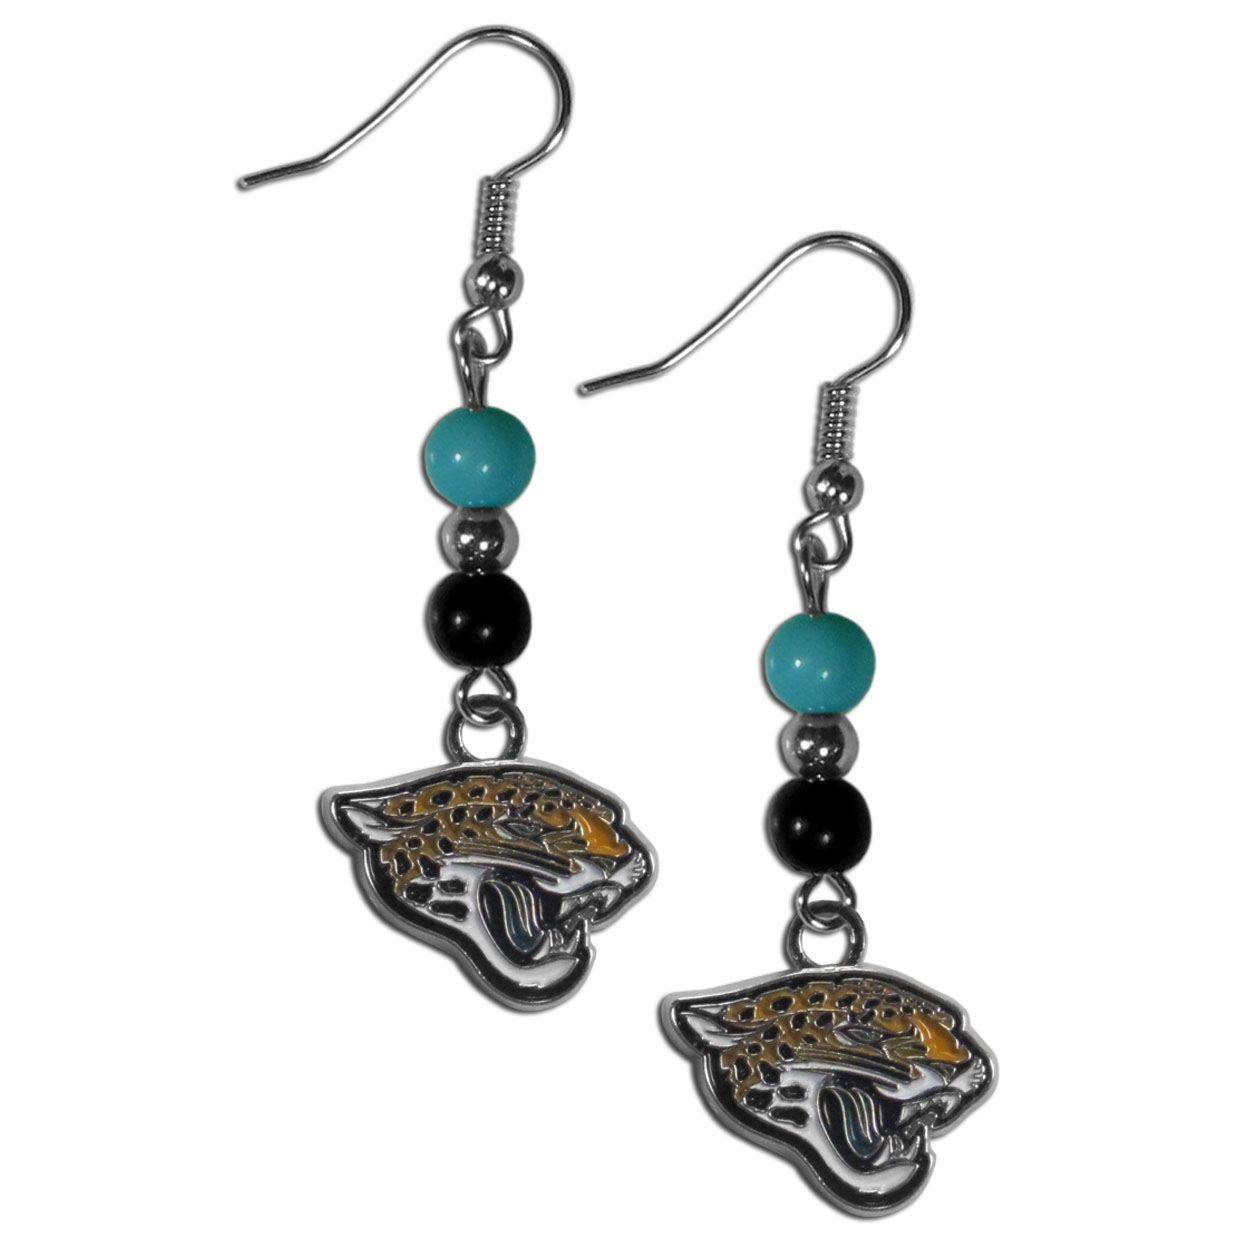 Jacksonville Jaguars Fan Bead Dangle Earrings - Love your team, show it off with our Jacksonville Jaguars bead dangle earrings! These super cute earrings hang approximately 2 inches and features 2 team colored beads and a high polish team charm. A must have for game day!